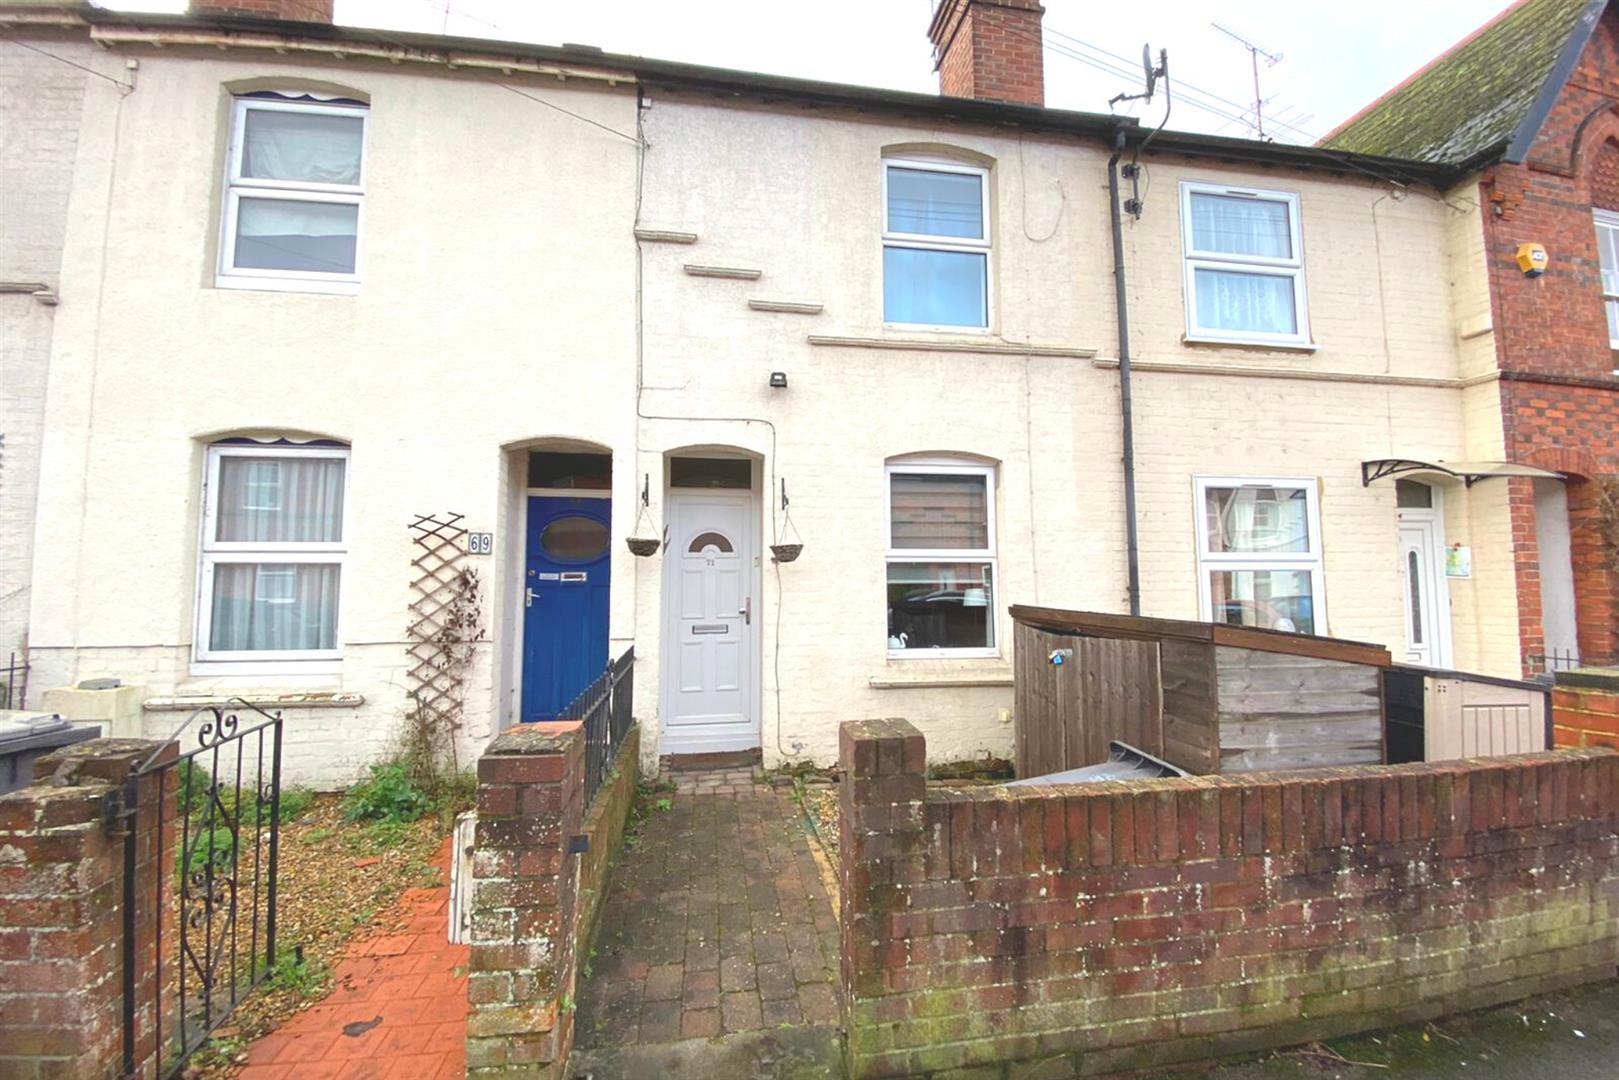 2 bed terraced for sale, RG1